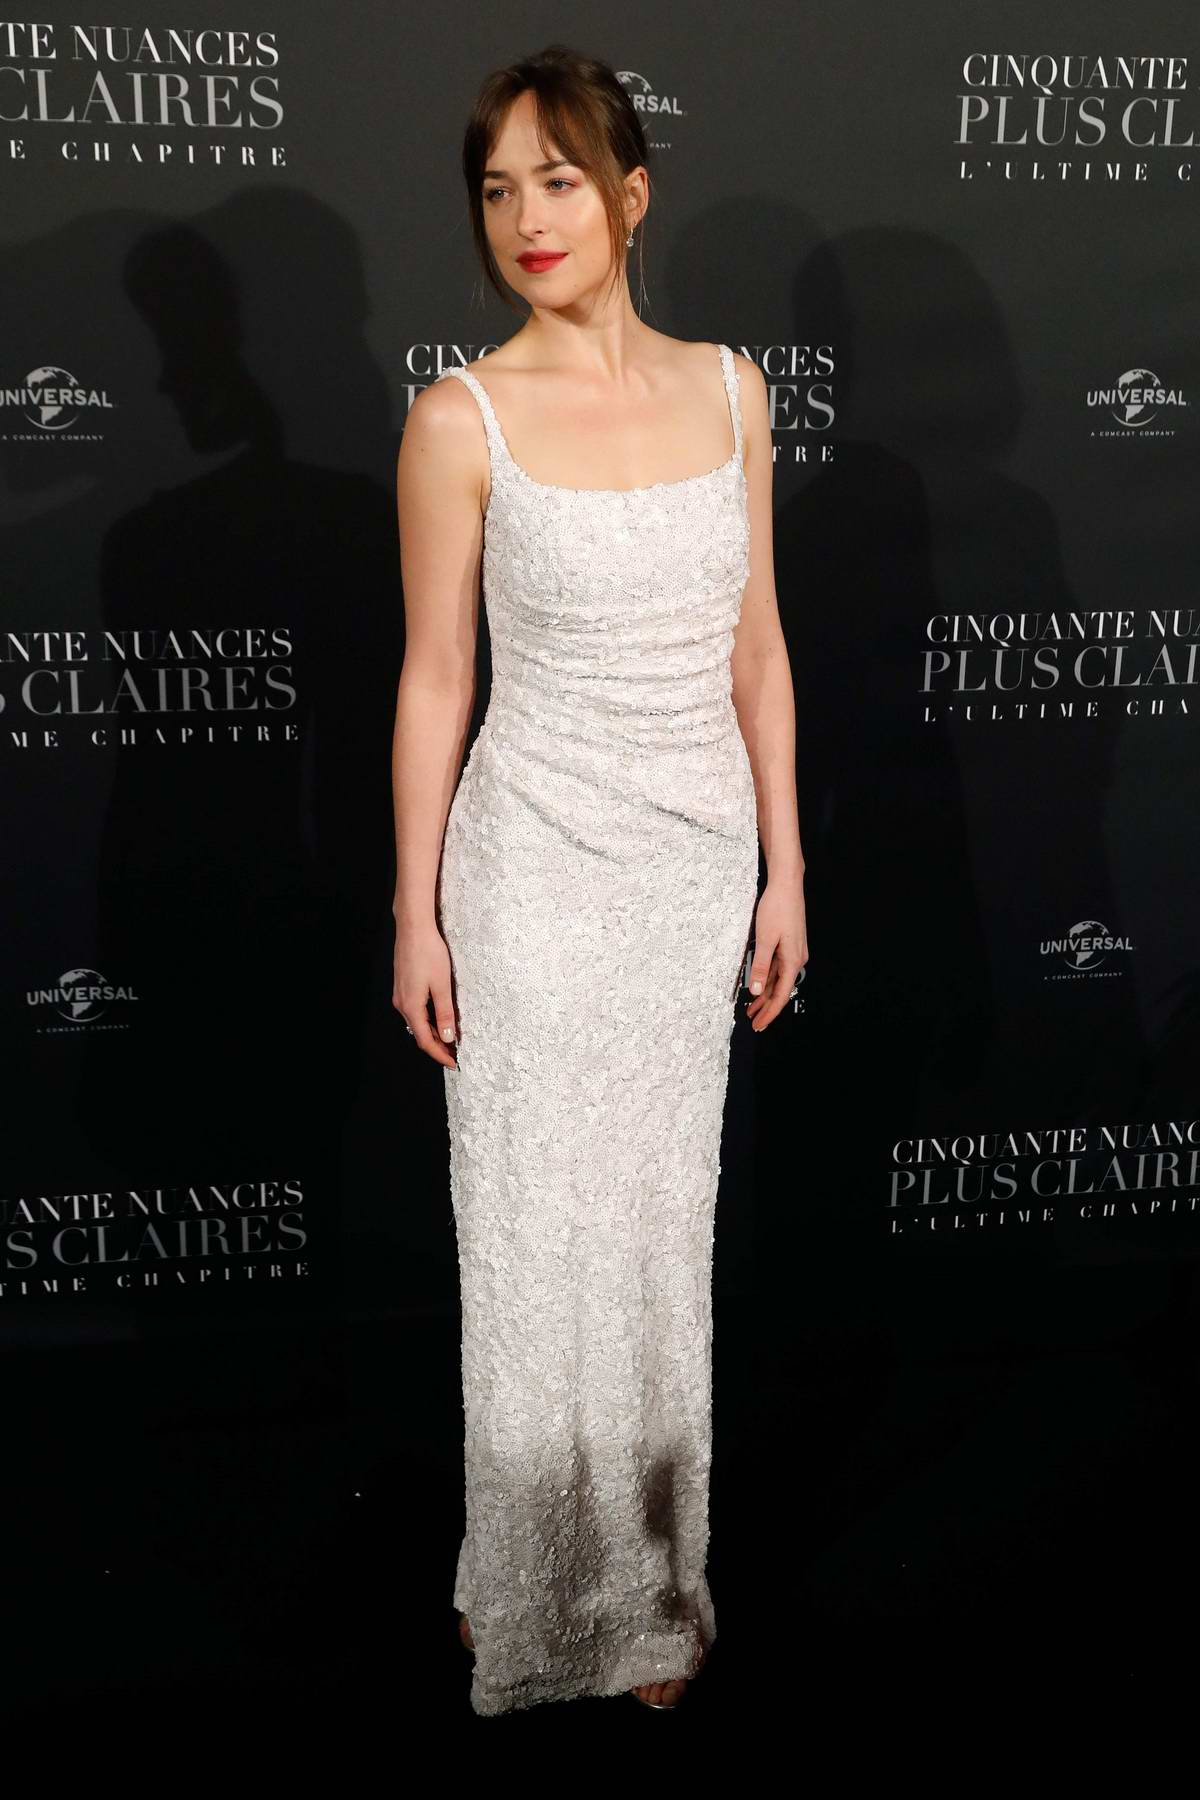 Dakota Johnson attends 'Fifty Shades Freed' premiere at Salle Pleyel in Paris, France